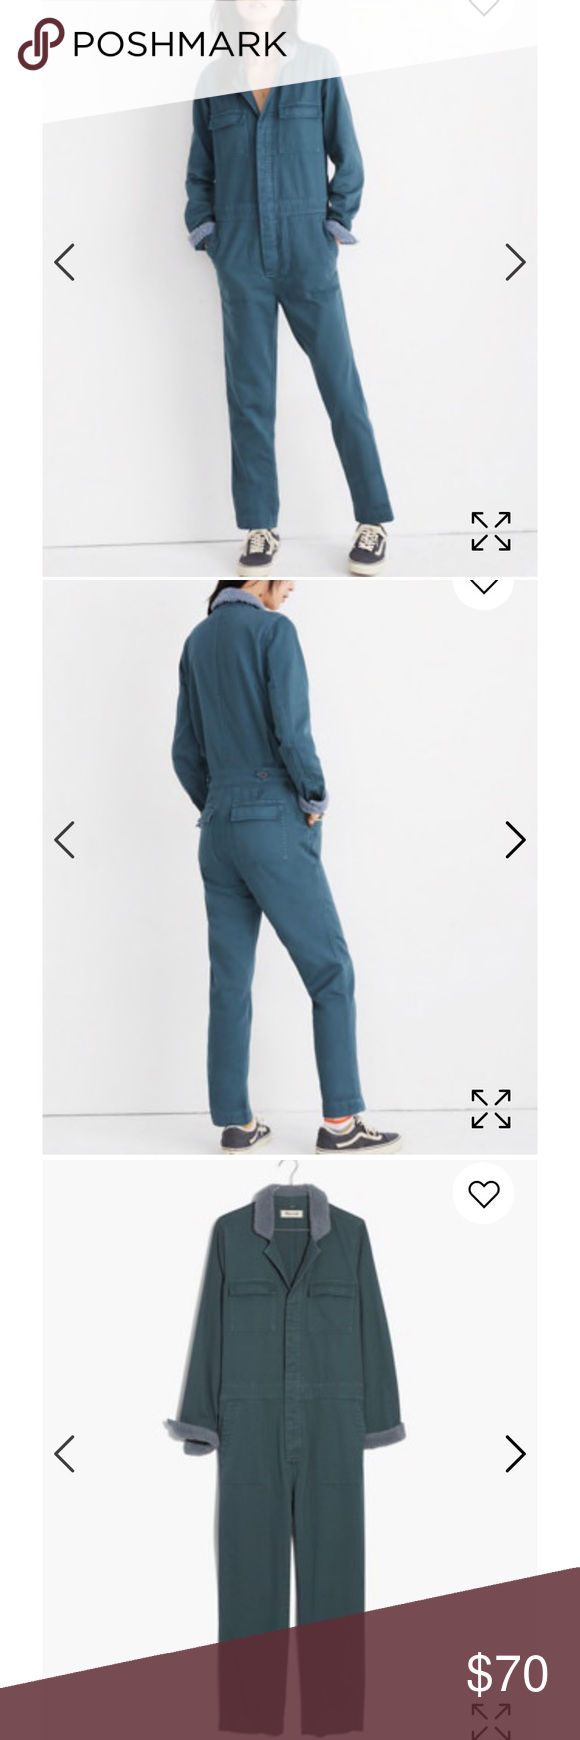 01432b8ebeb6 Madewell Sherpa Coverall Jumpsuit Selling because it s not my style Madewell  Pants